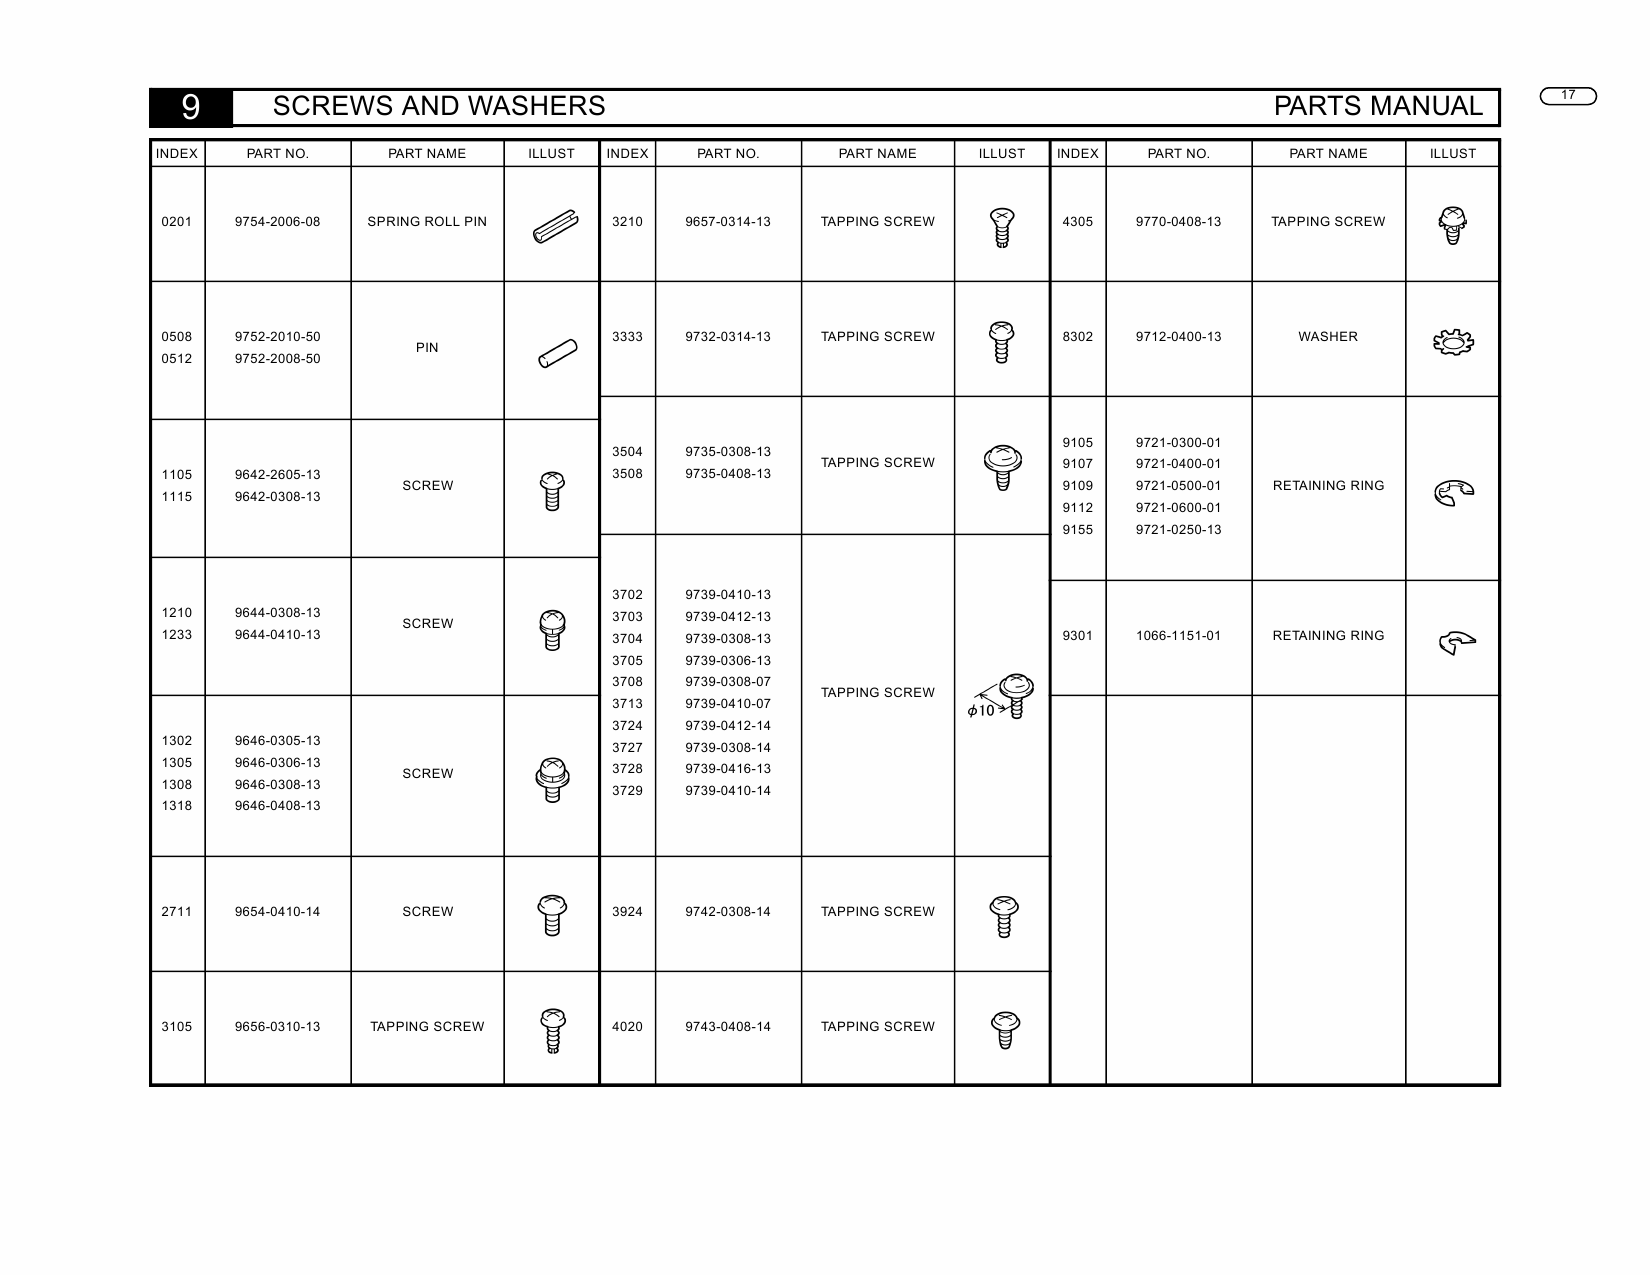 Konica-Minolta Options AFR-14 Parts Manual-6